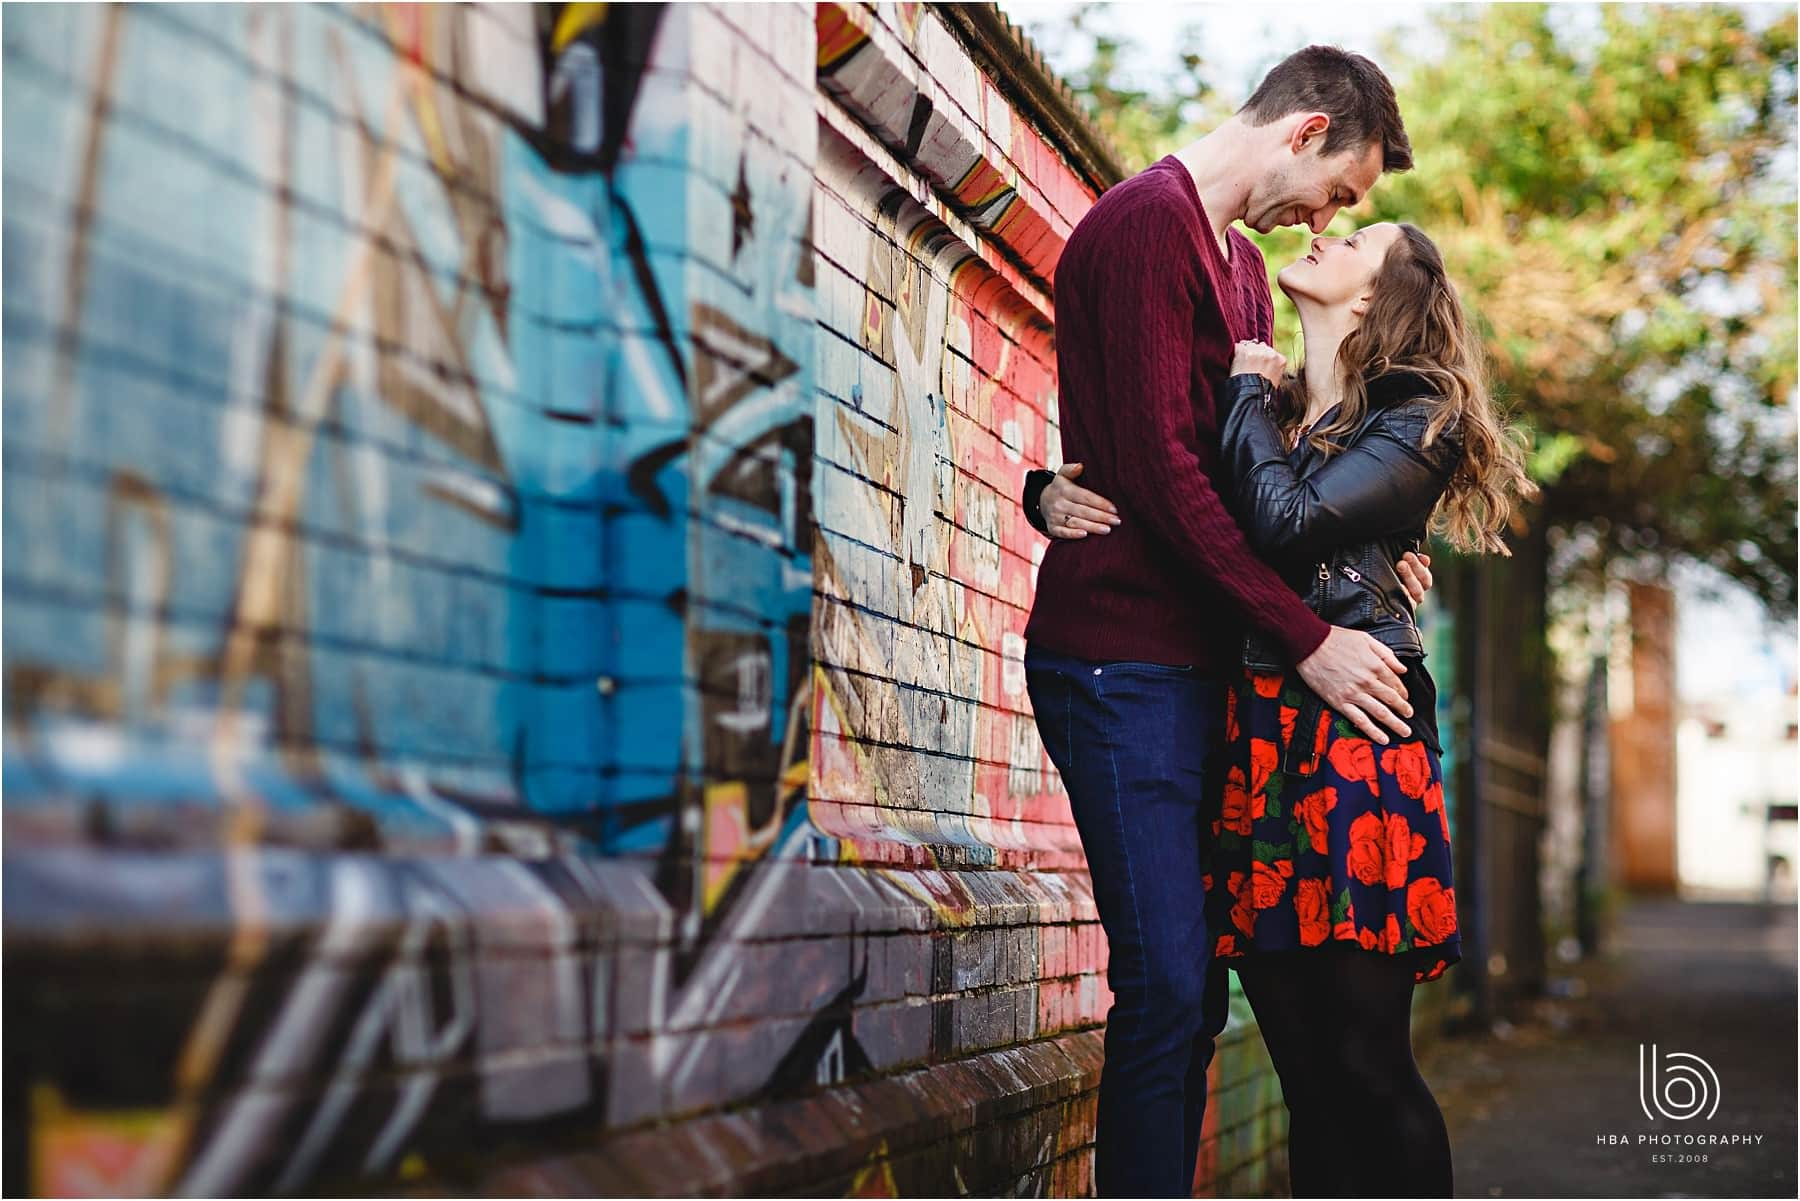 The bride and groom hugging each other by a graffiti wall